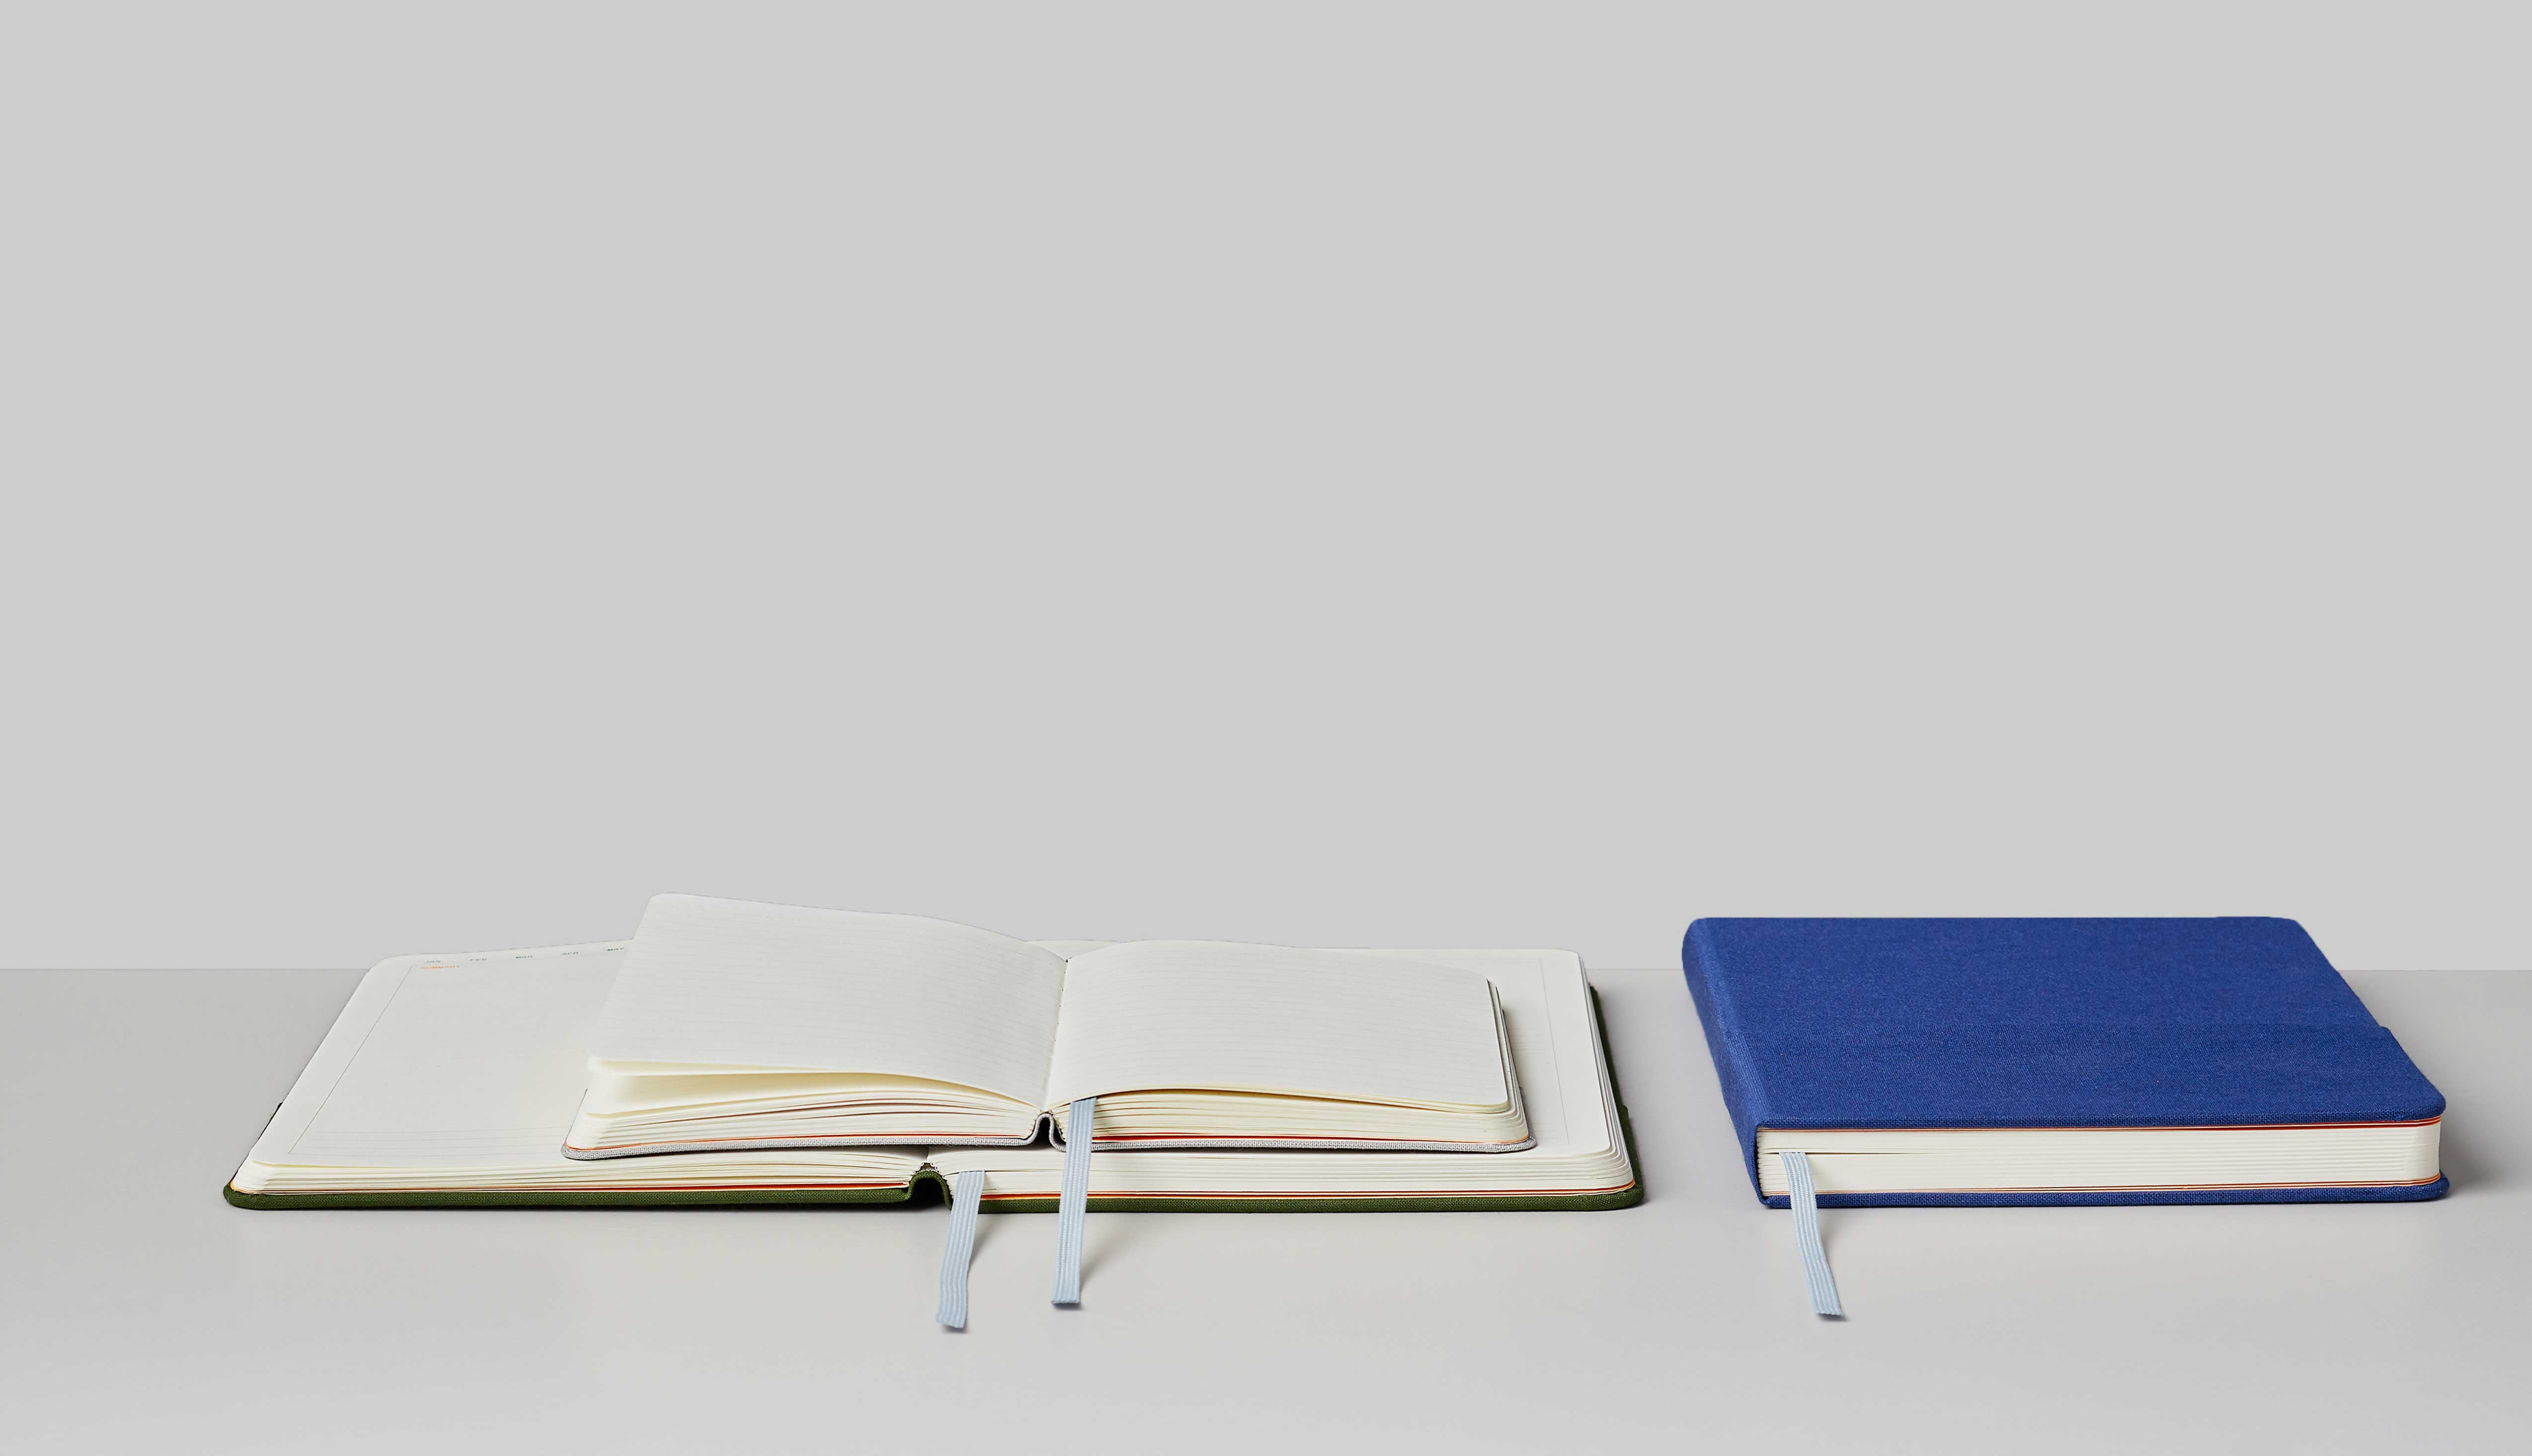 full<h3>Opens Flat</h3><p>Your great ideas deserve a smooth takeoff. Summorie notebooks are designed to open flat for that borderless feel.</p>